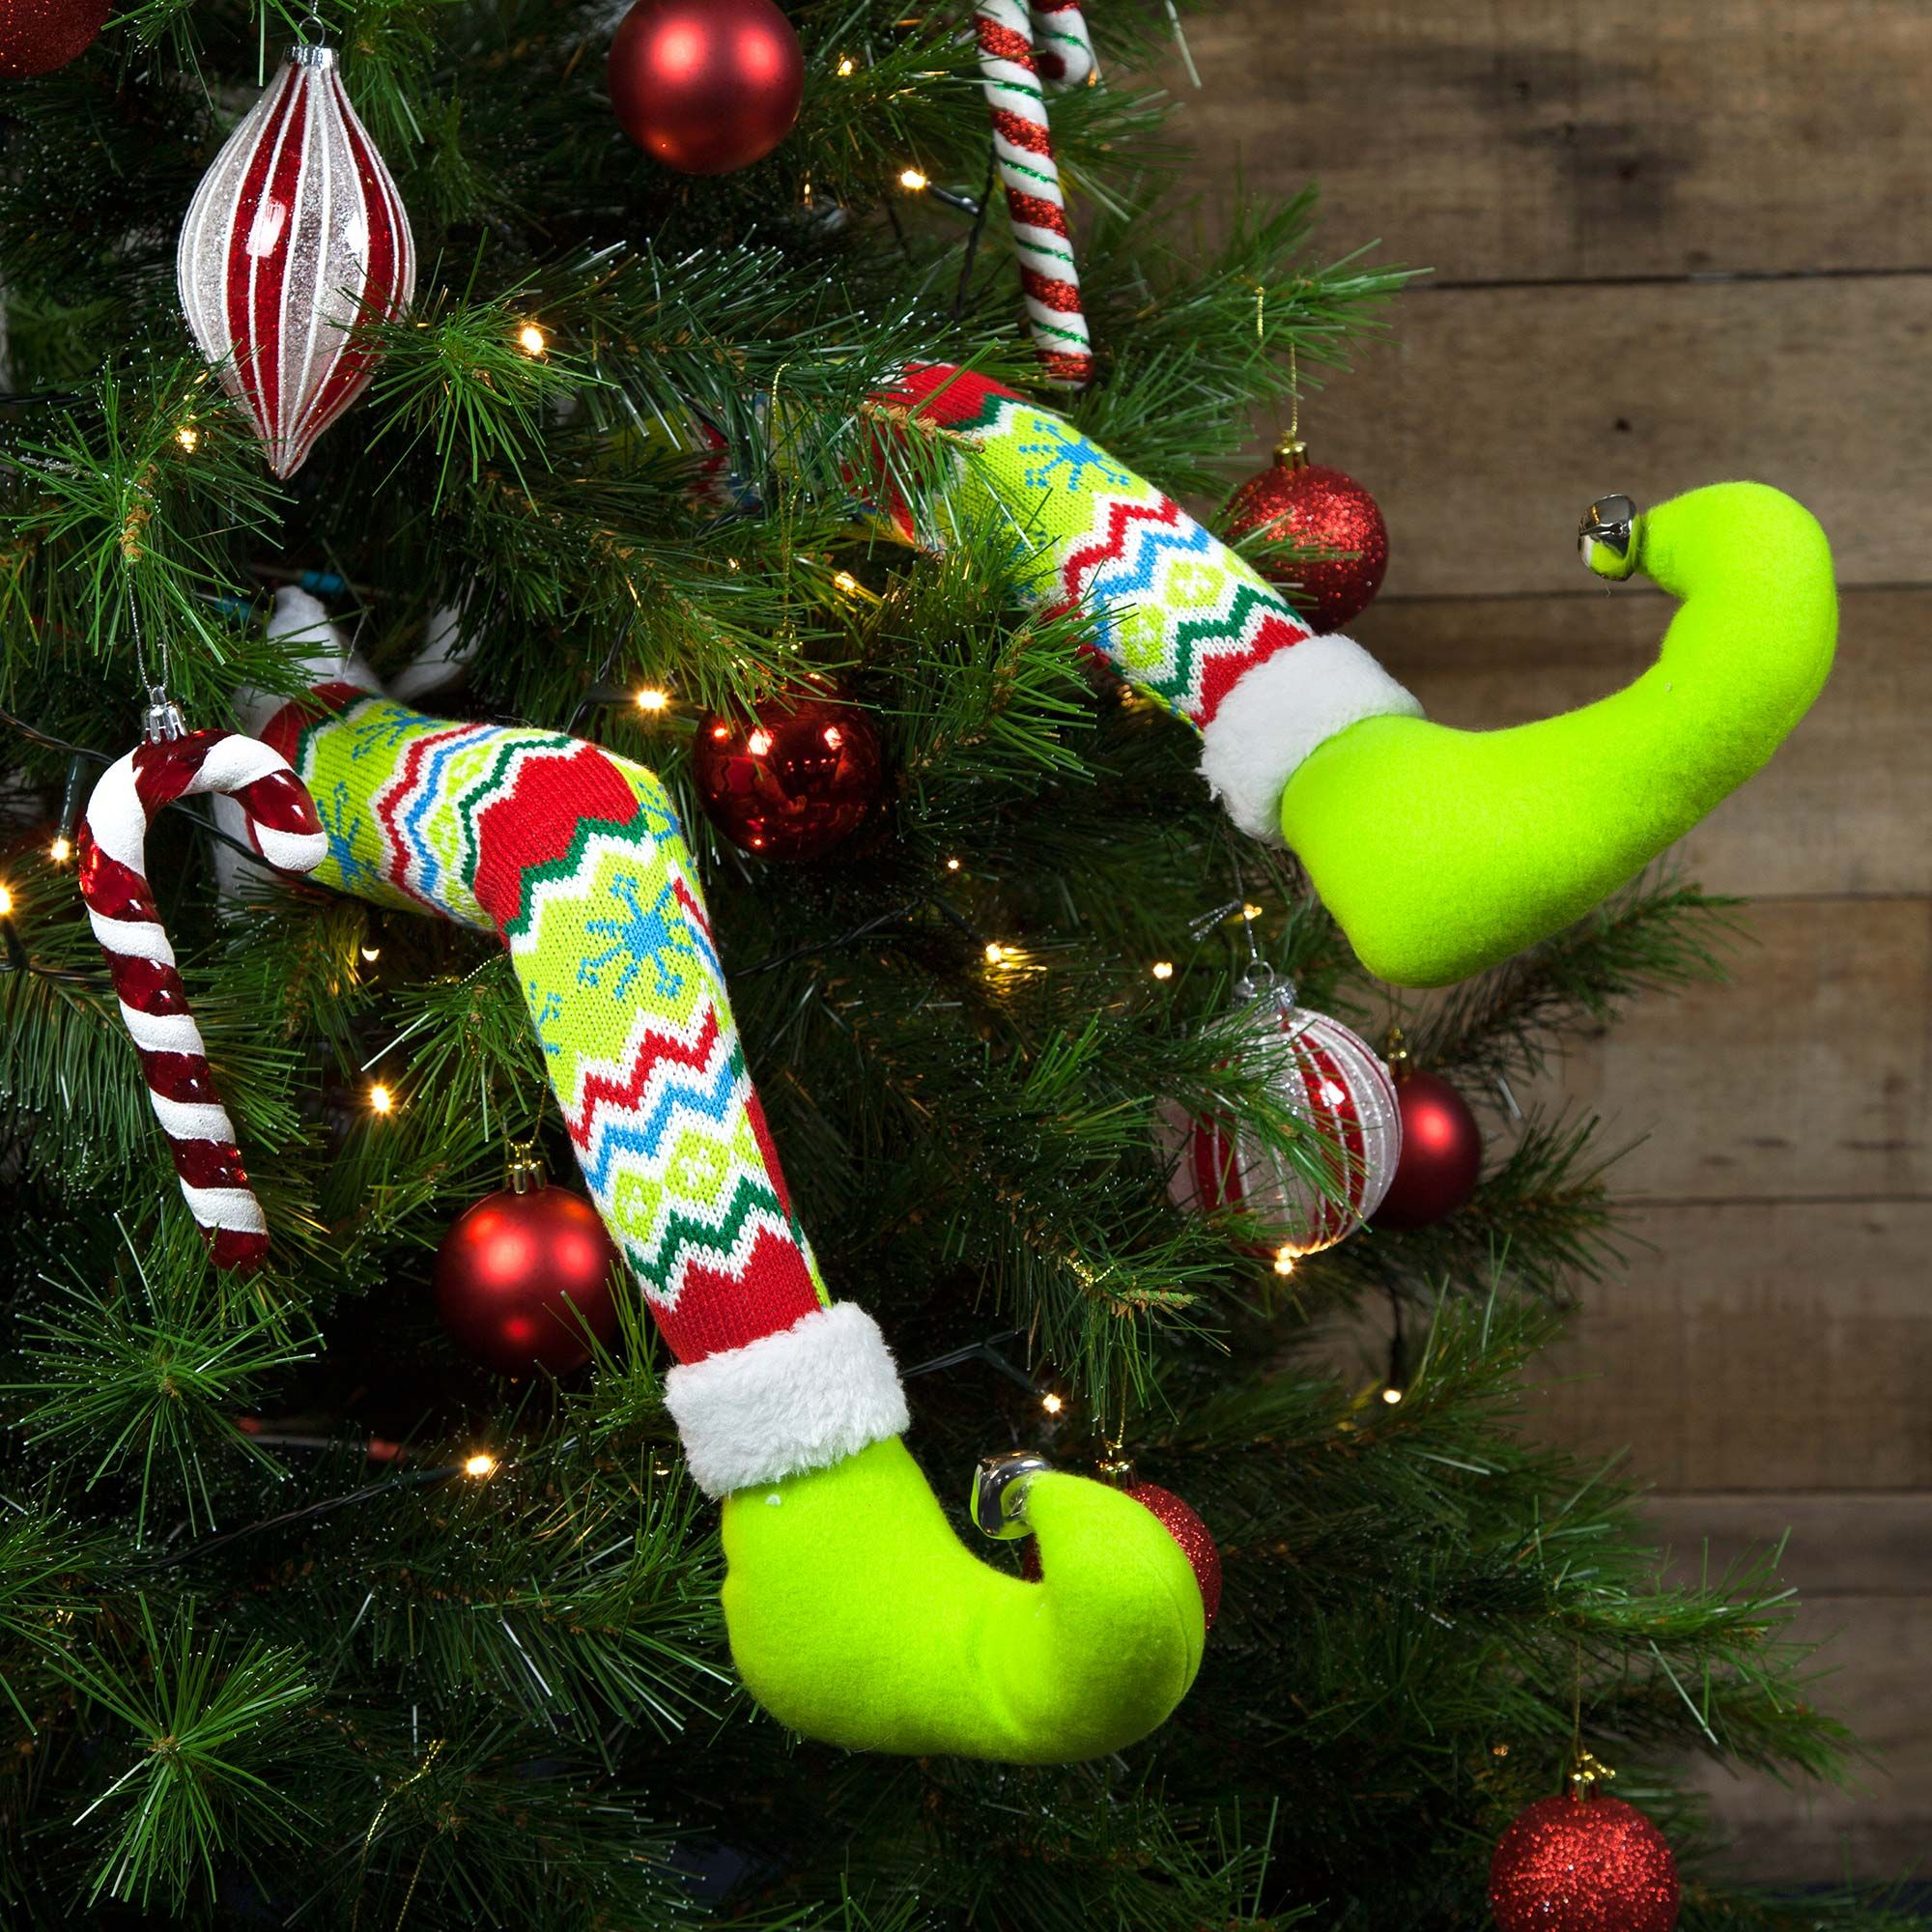 fun christmas elf leg decorations perfect to put in the christmas tree for a fun look - Elf Legs Christmas Decoration